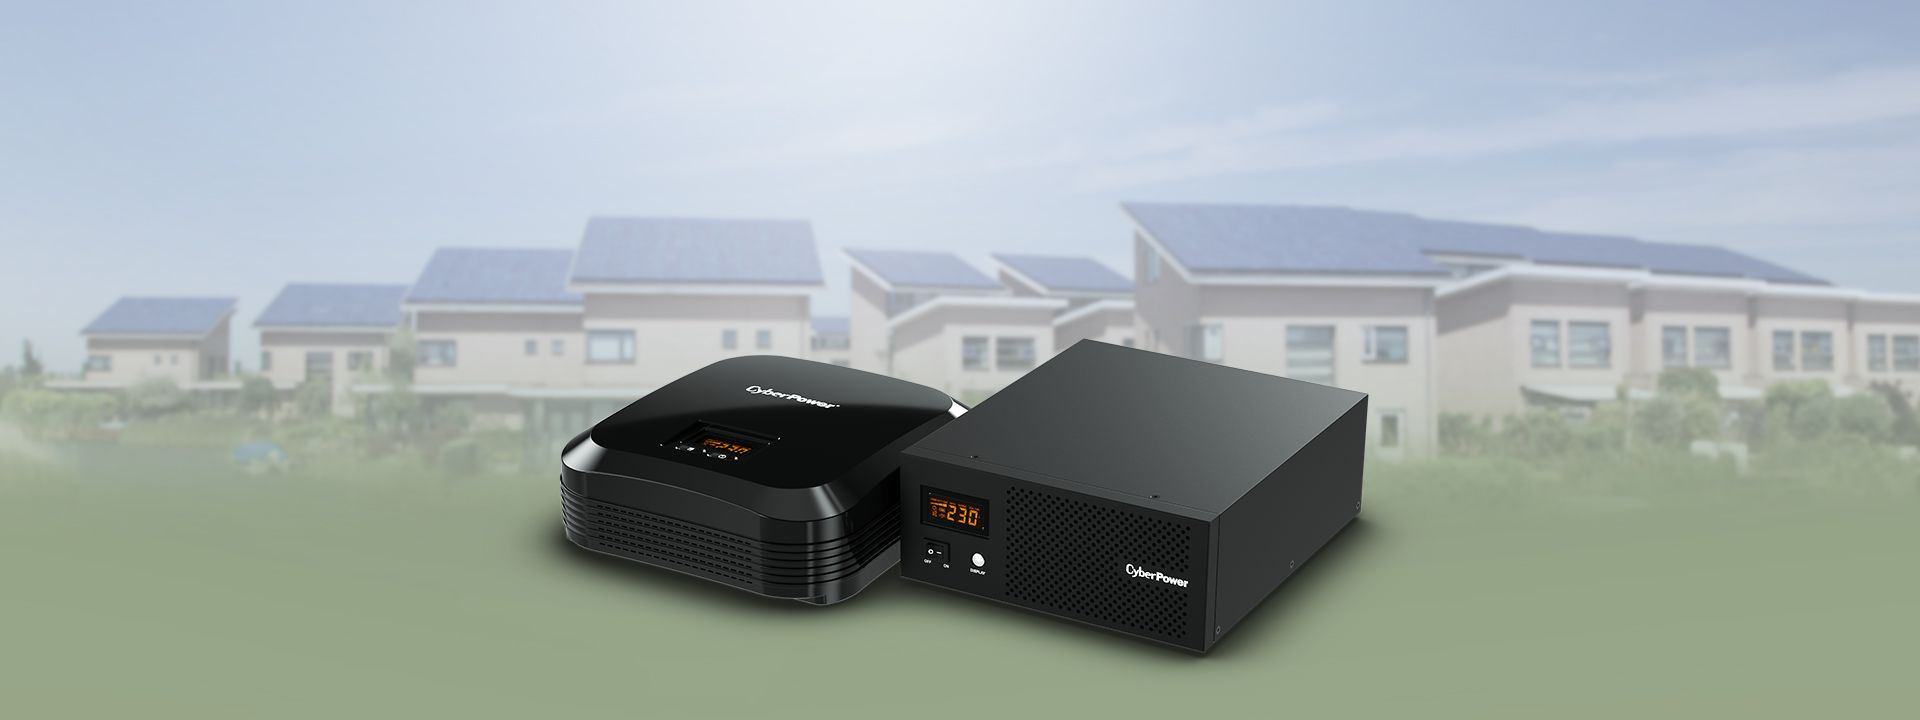 CyberPower's Power Inverter is the ideal backup power supply with generator compatibility and surge protection